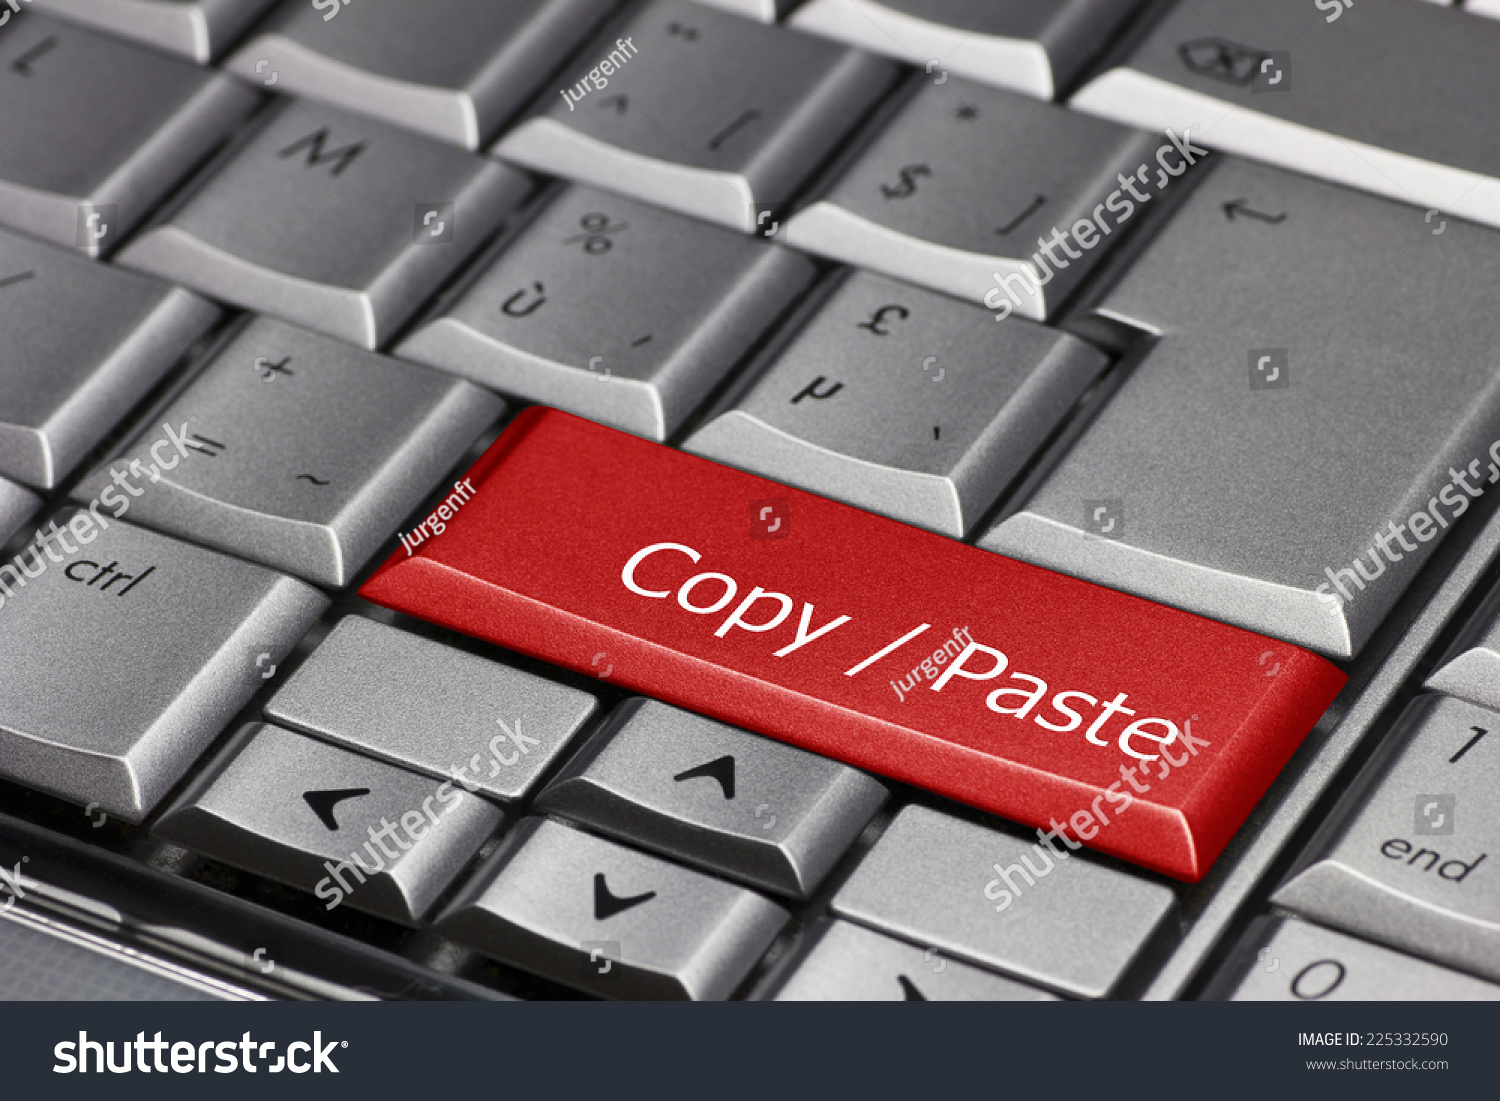 How to copy on computer